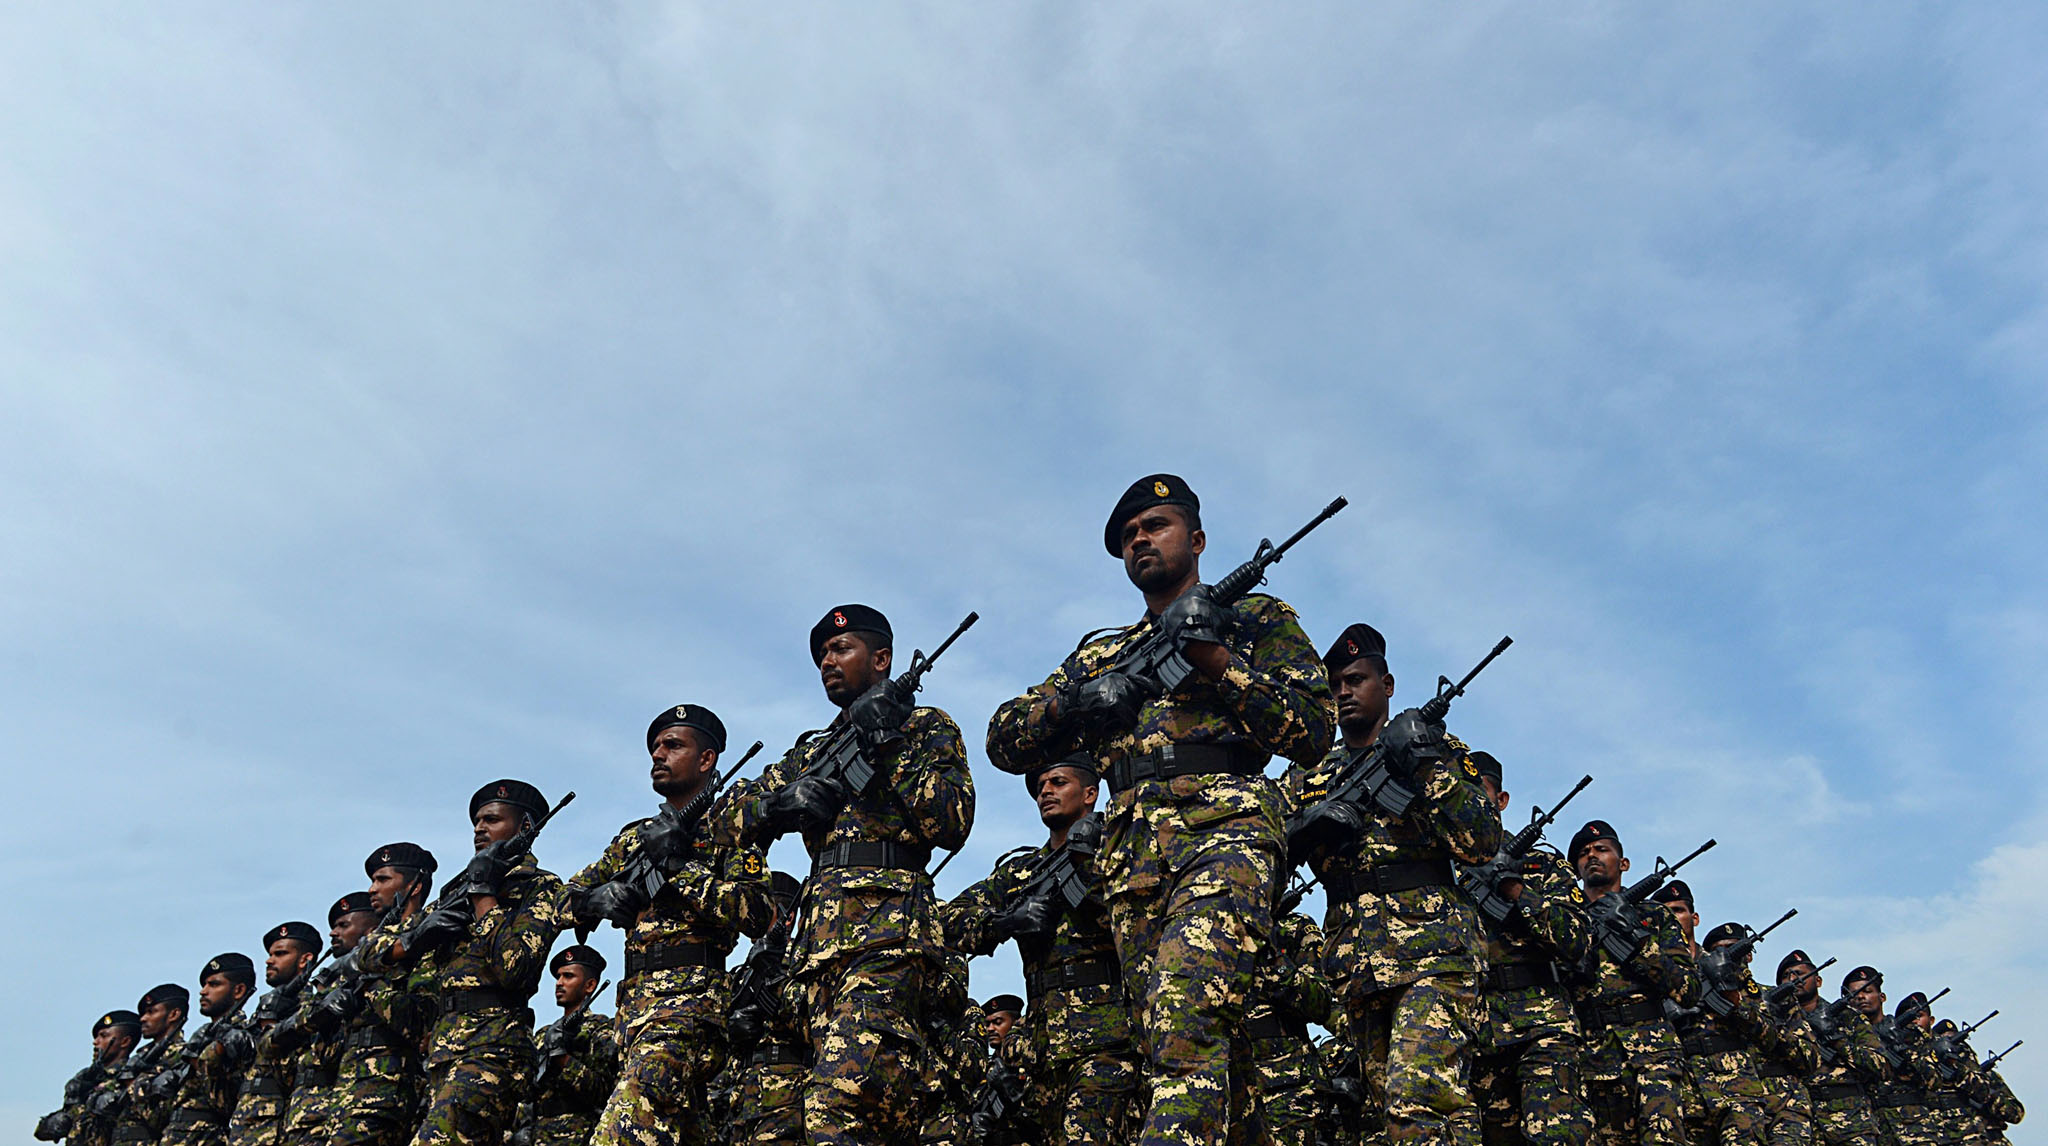 Sri Lankan military personnel march duri...Sri Lankan military personnel march during an Independence Day parade rehearsal in Colombo on February 2, 2016. Sri Lanka is preparing to mark the 68th anniversary of independence from Britain on February 4.  AFP PHOTO/ Ishara S. KODIKARAIshara S.KODIKARA/AFP/Getty Images